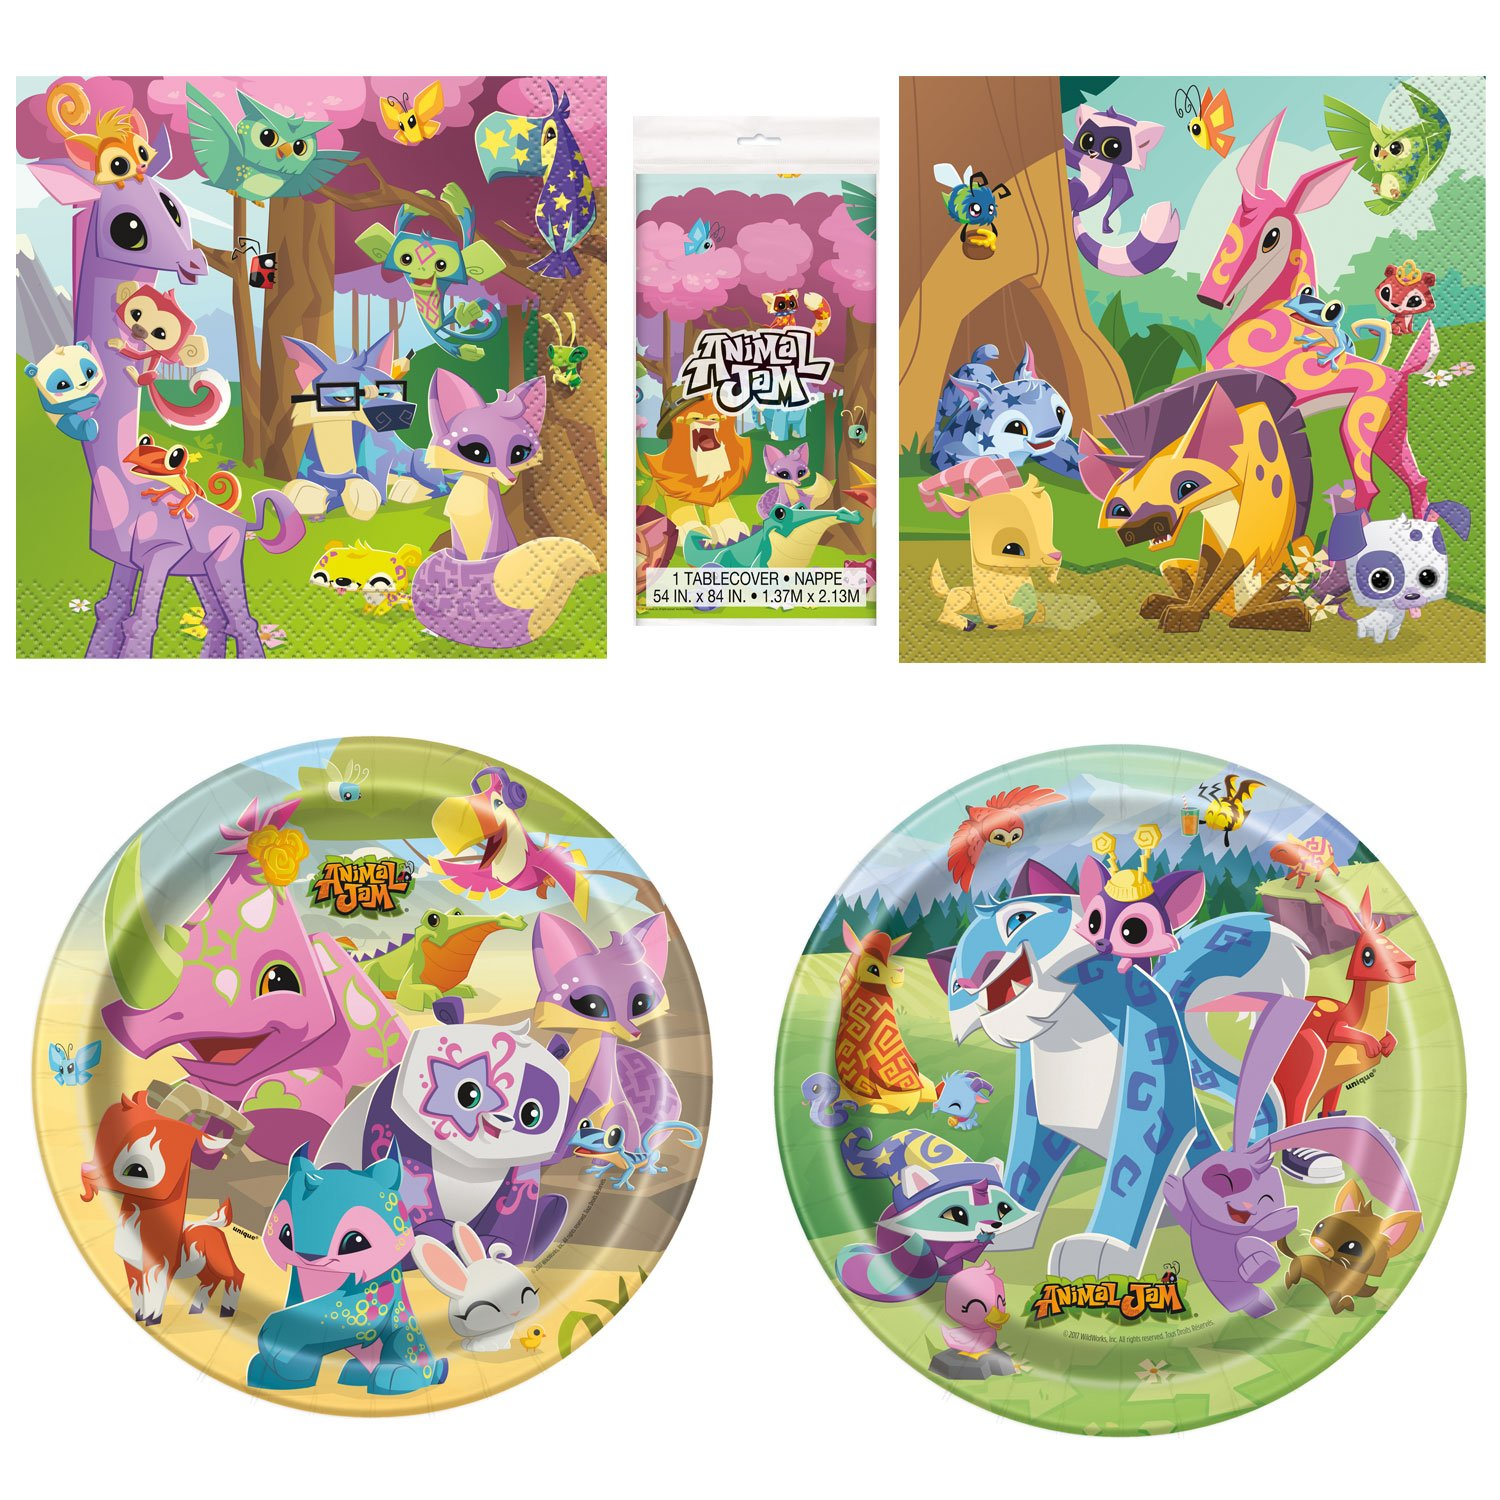 Unique Animal Jam Party Bundle | Luncheon & Beverage Napkins, Dinner & Dessert Plates, Table Cover | Great for Zoo/Safari/Forest Birthday Themed Parties